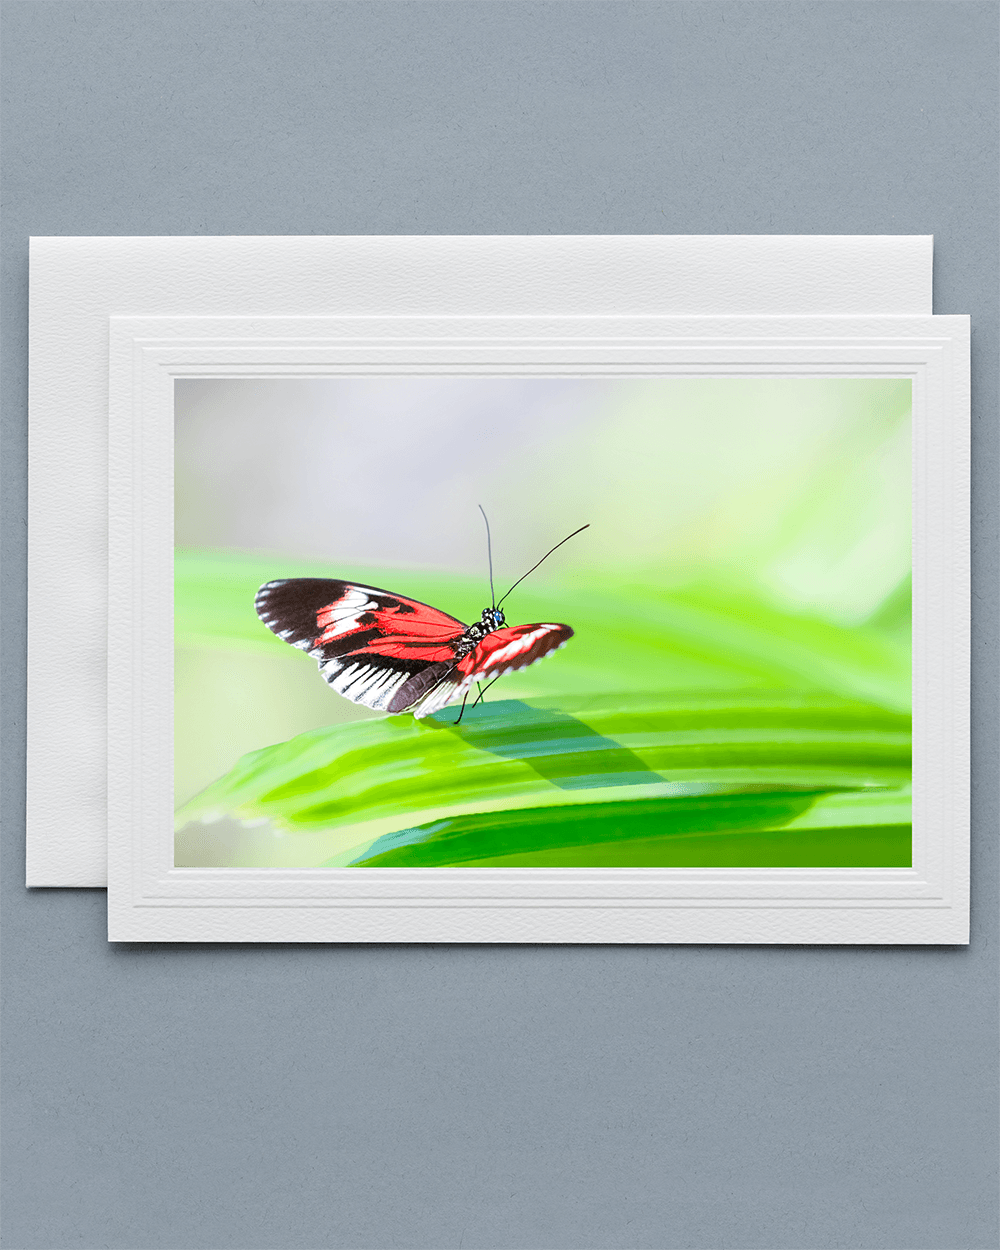 Lavilo™ Greeting Card - Piano Key Butterfly on a leaf